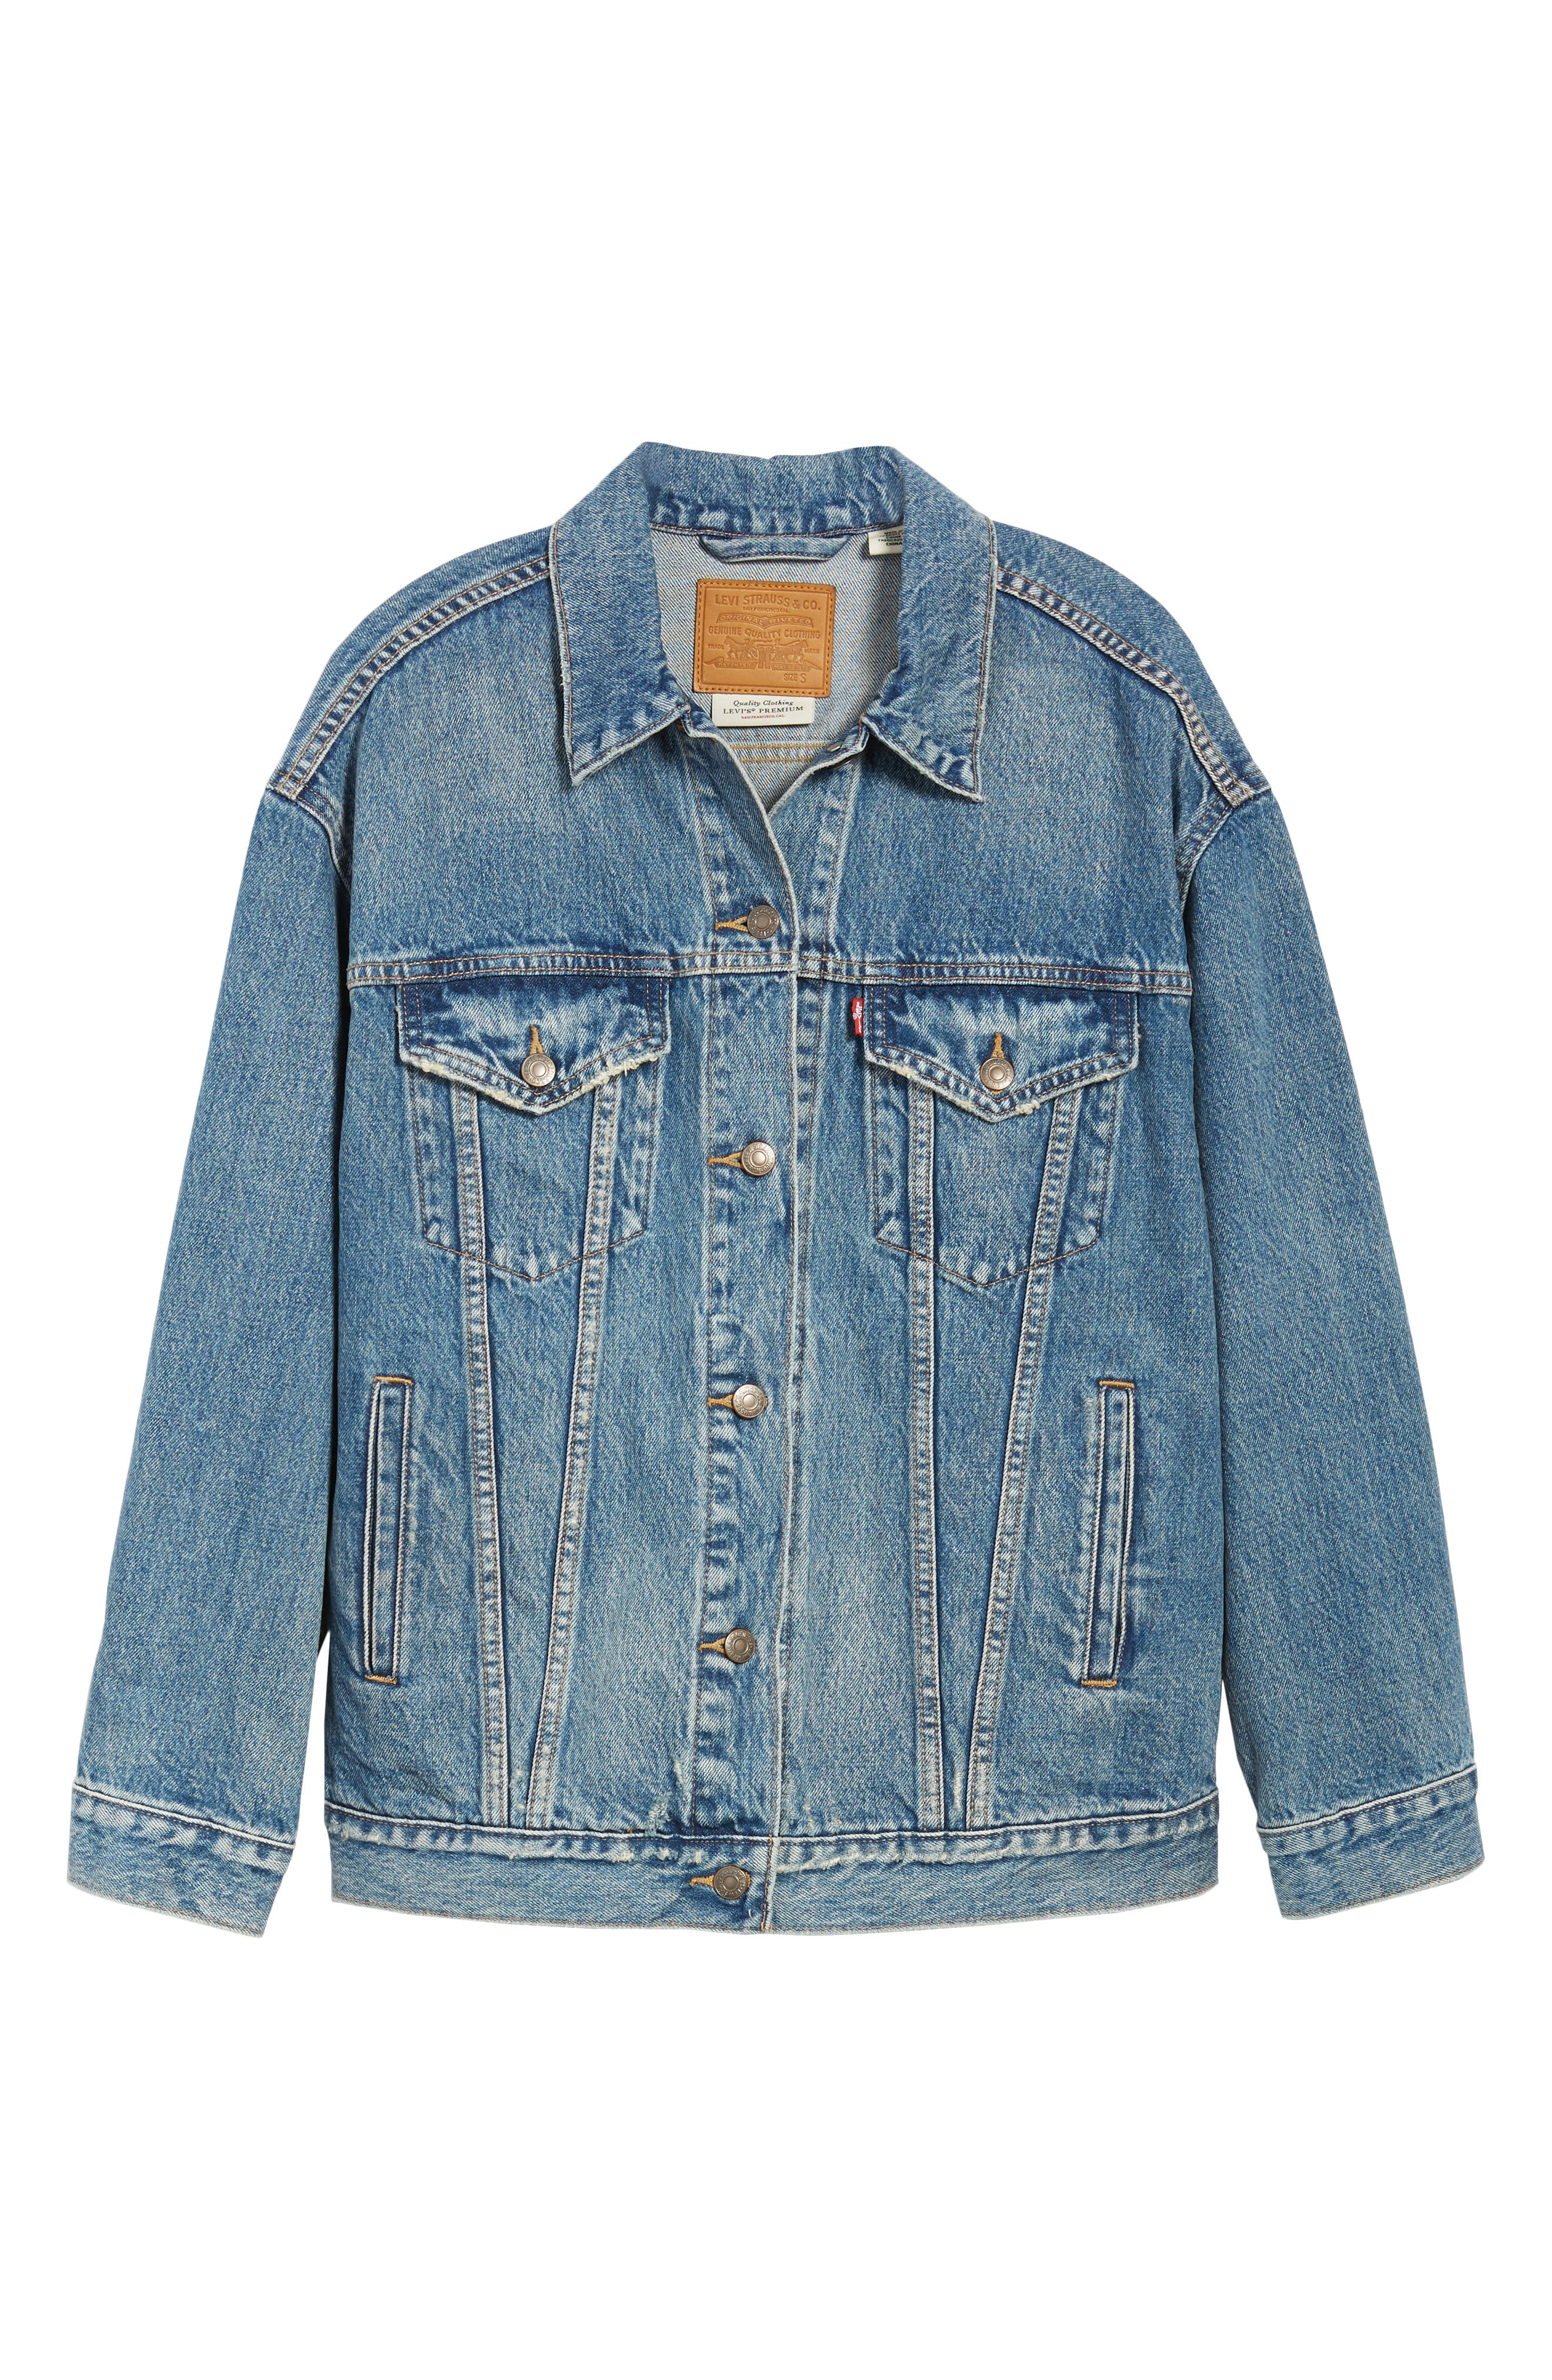 Baggy Trucker Denim Jacket,                             Alternate thumbnail 6, color,                             BUST A MOVE